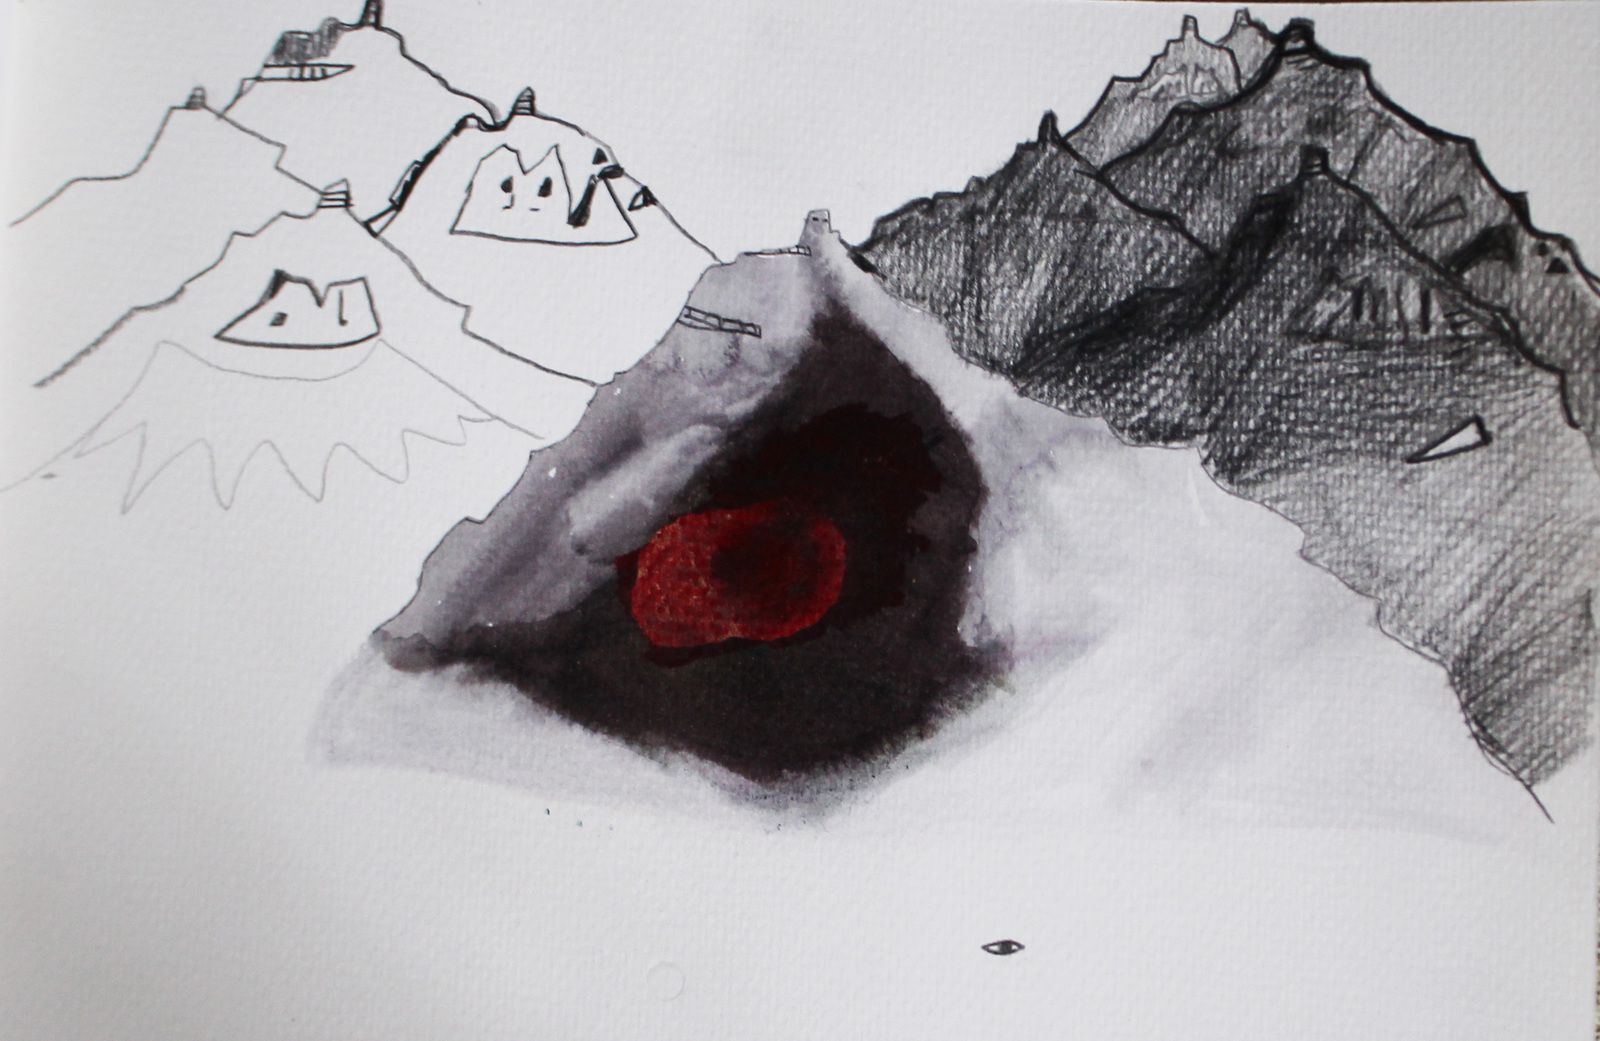 The Stapafell volcano, in (the peninsula of) Snaefellsnes, near Arnastapi - pencil on paper - artwork by Anne Herzog